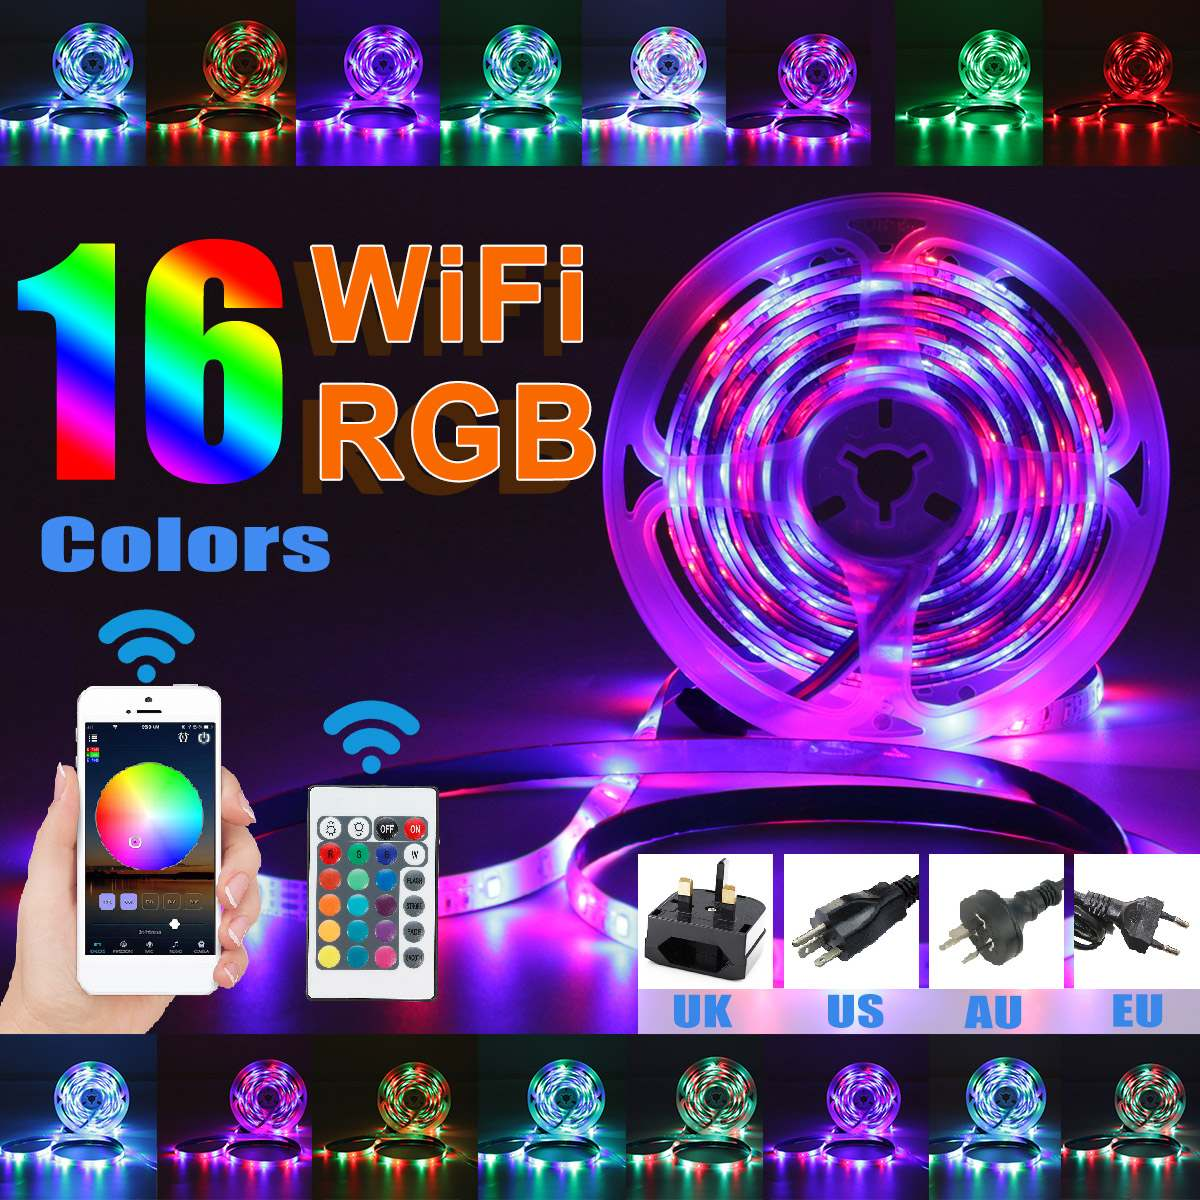 12V USB Led Strips Light 2835 LED SMD RGB with WIFI or Magic Home Pro App for TV Backlight ,Home Decor,Color Changing 16 colors